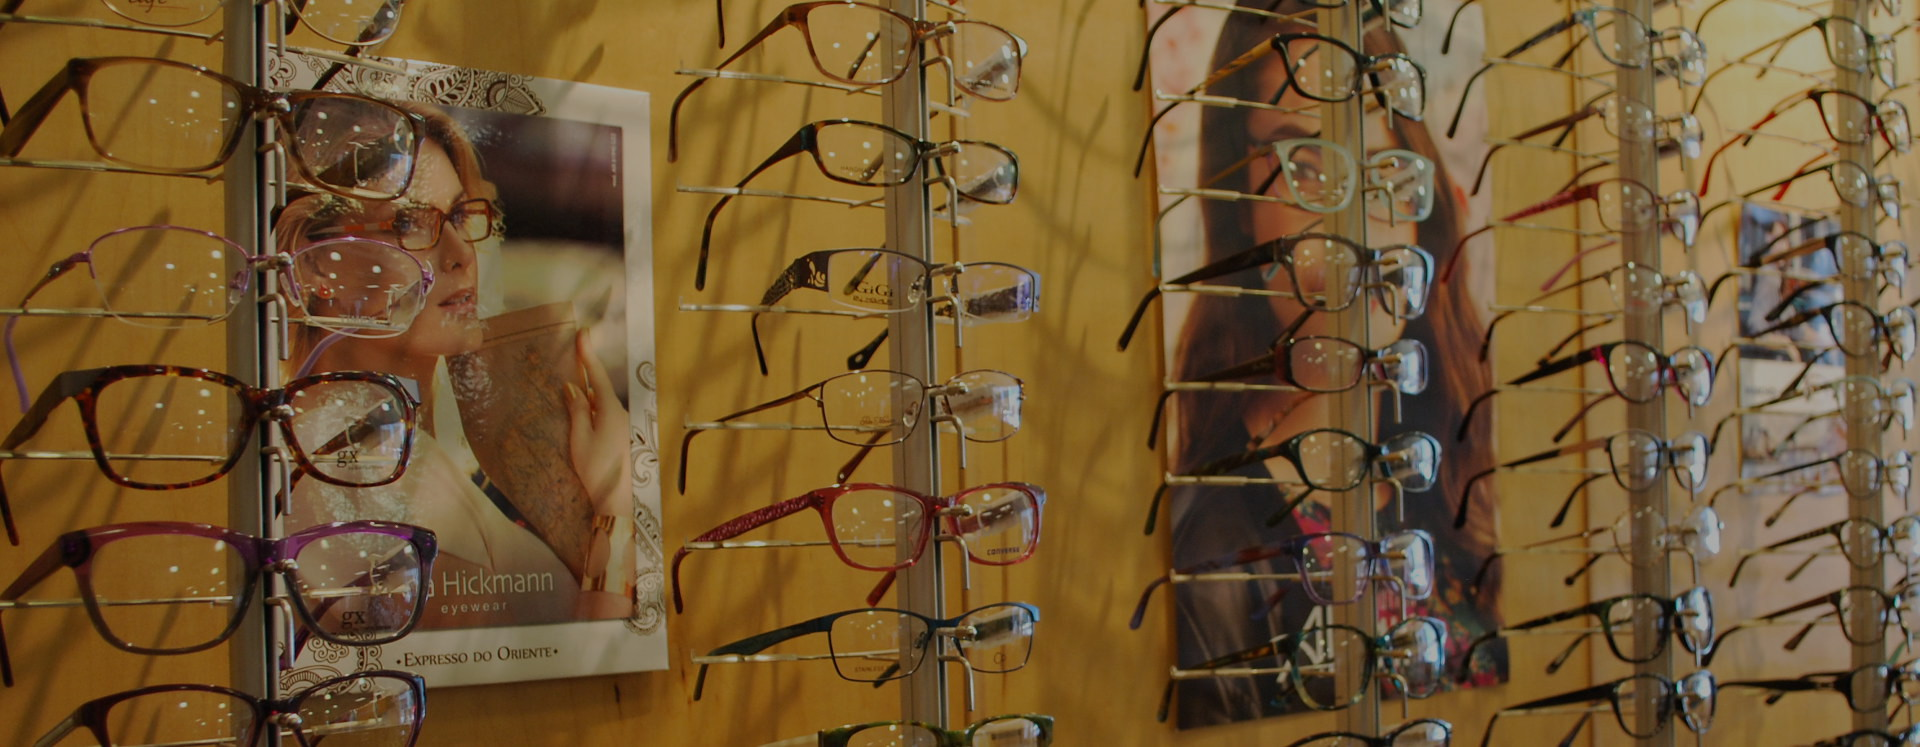 A Wall of Reading Glasses